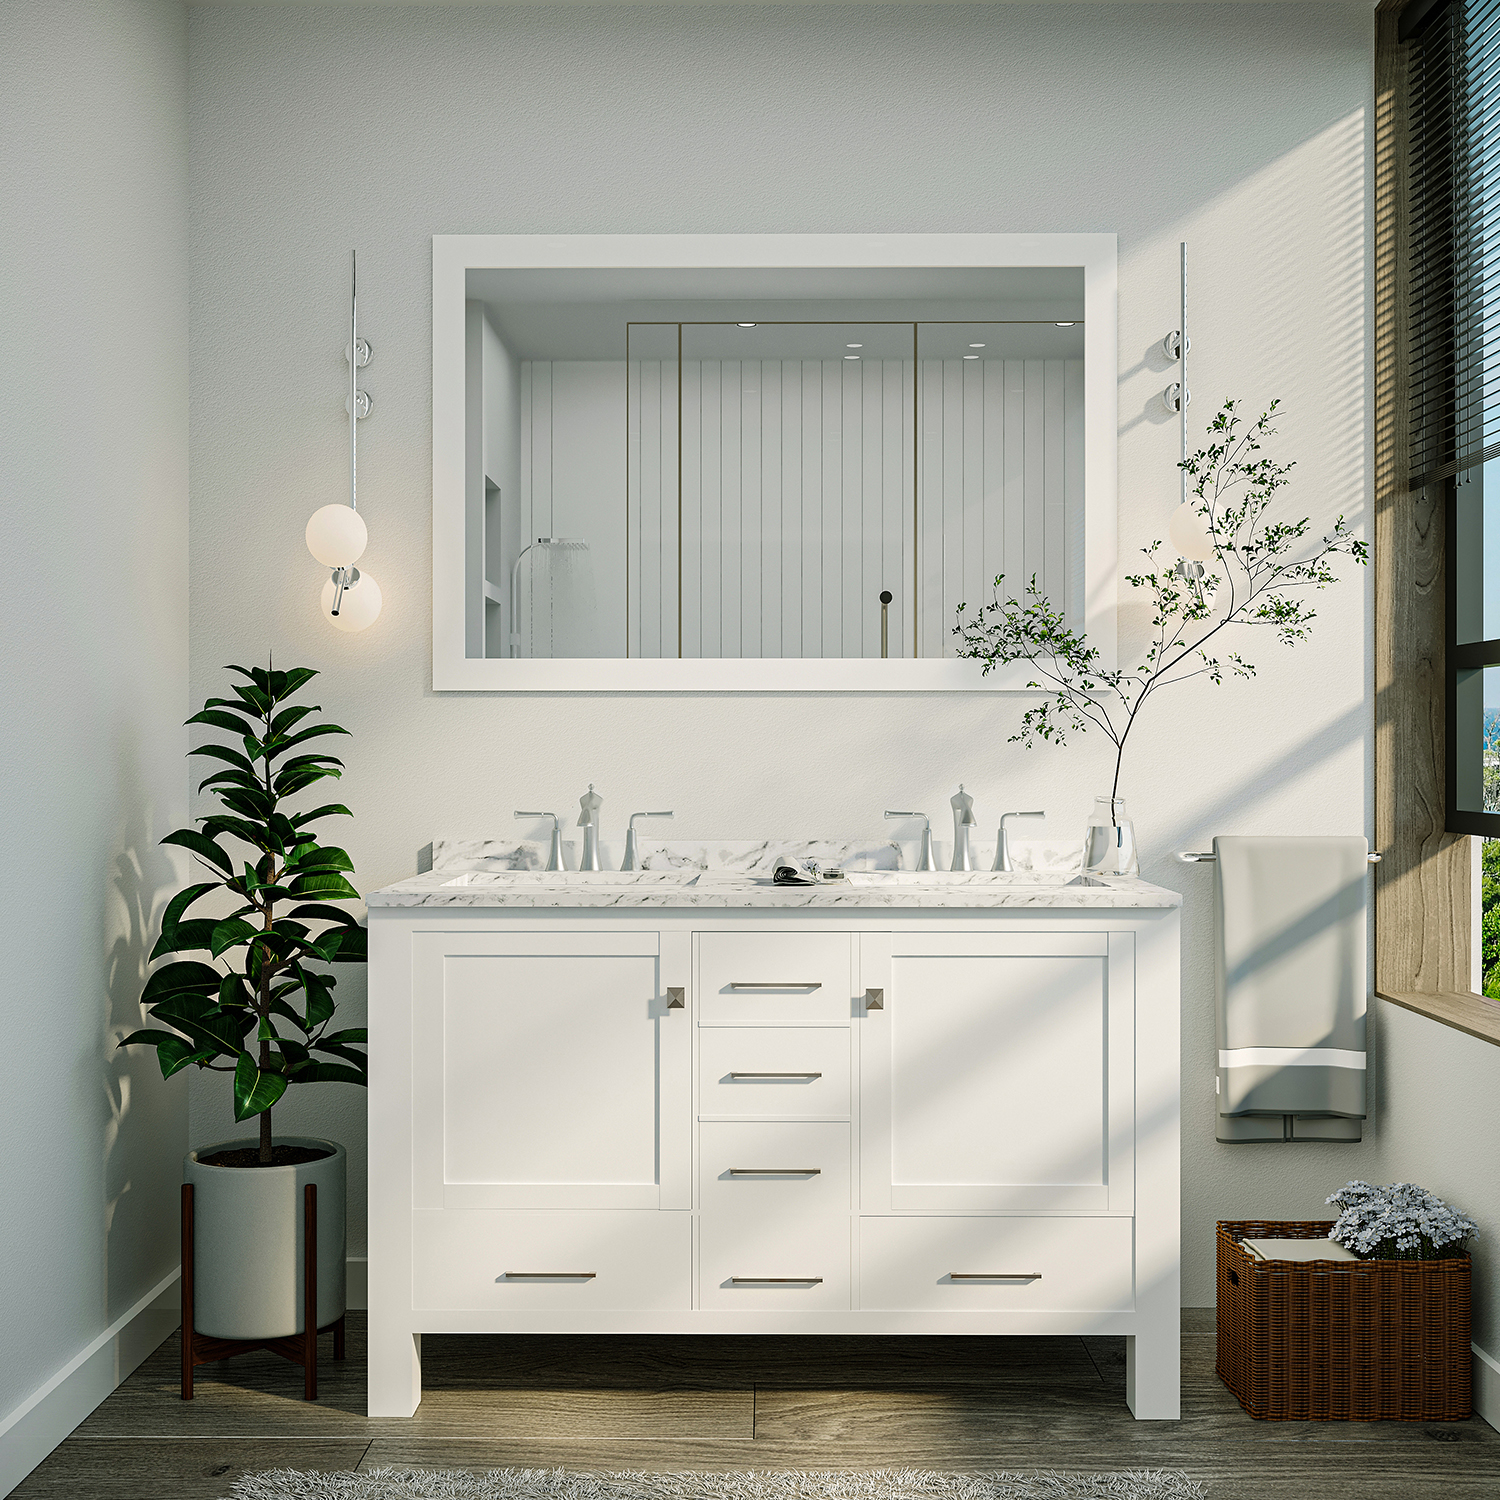 48 Inch Double Sink Vanity Top.Eviva Aberdeen 48 Transitional White Bathroom Vanity With White Carrara Countertop And Double Sinks